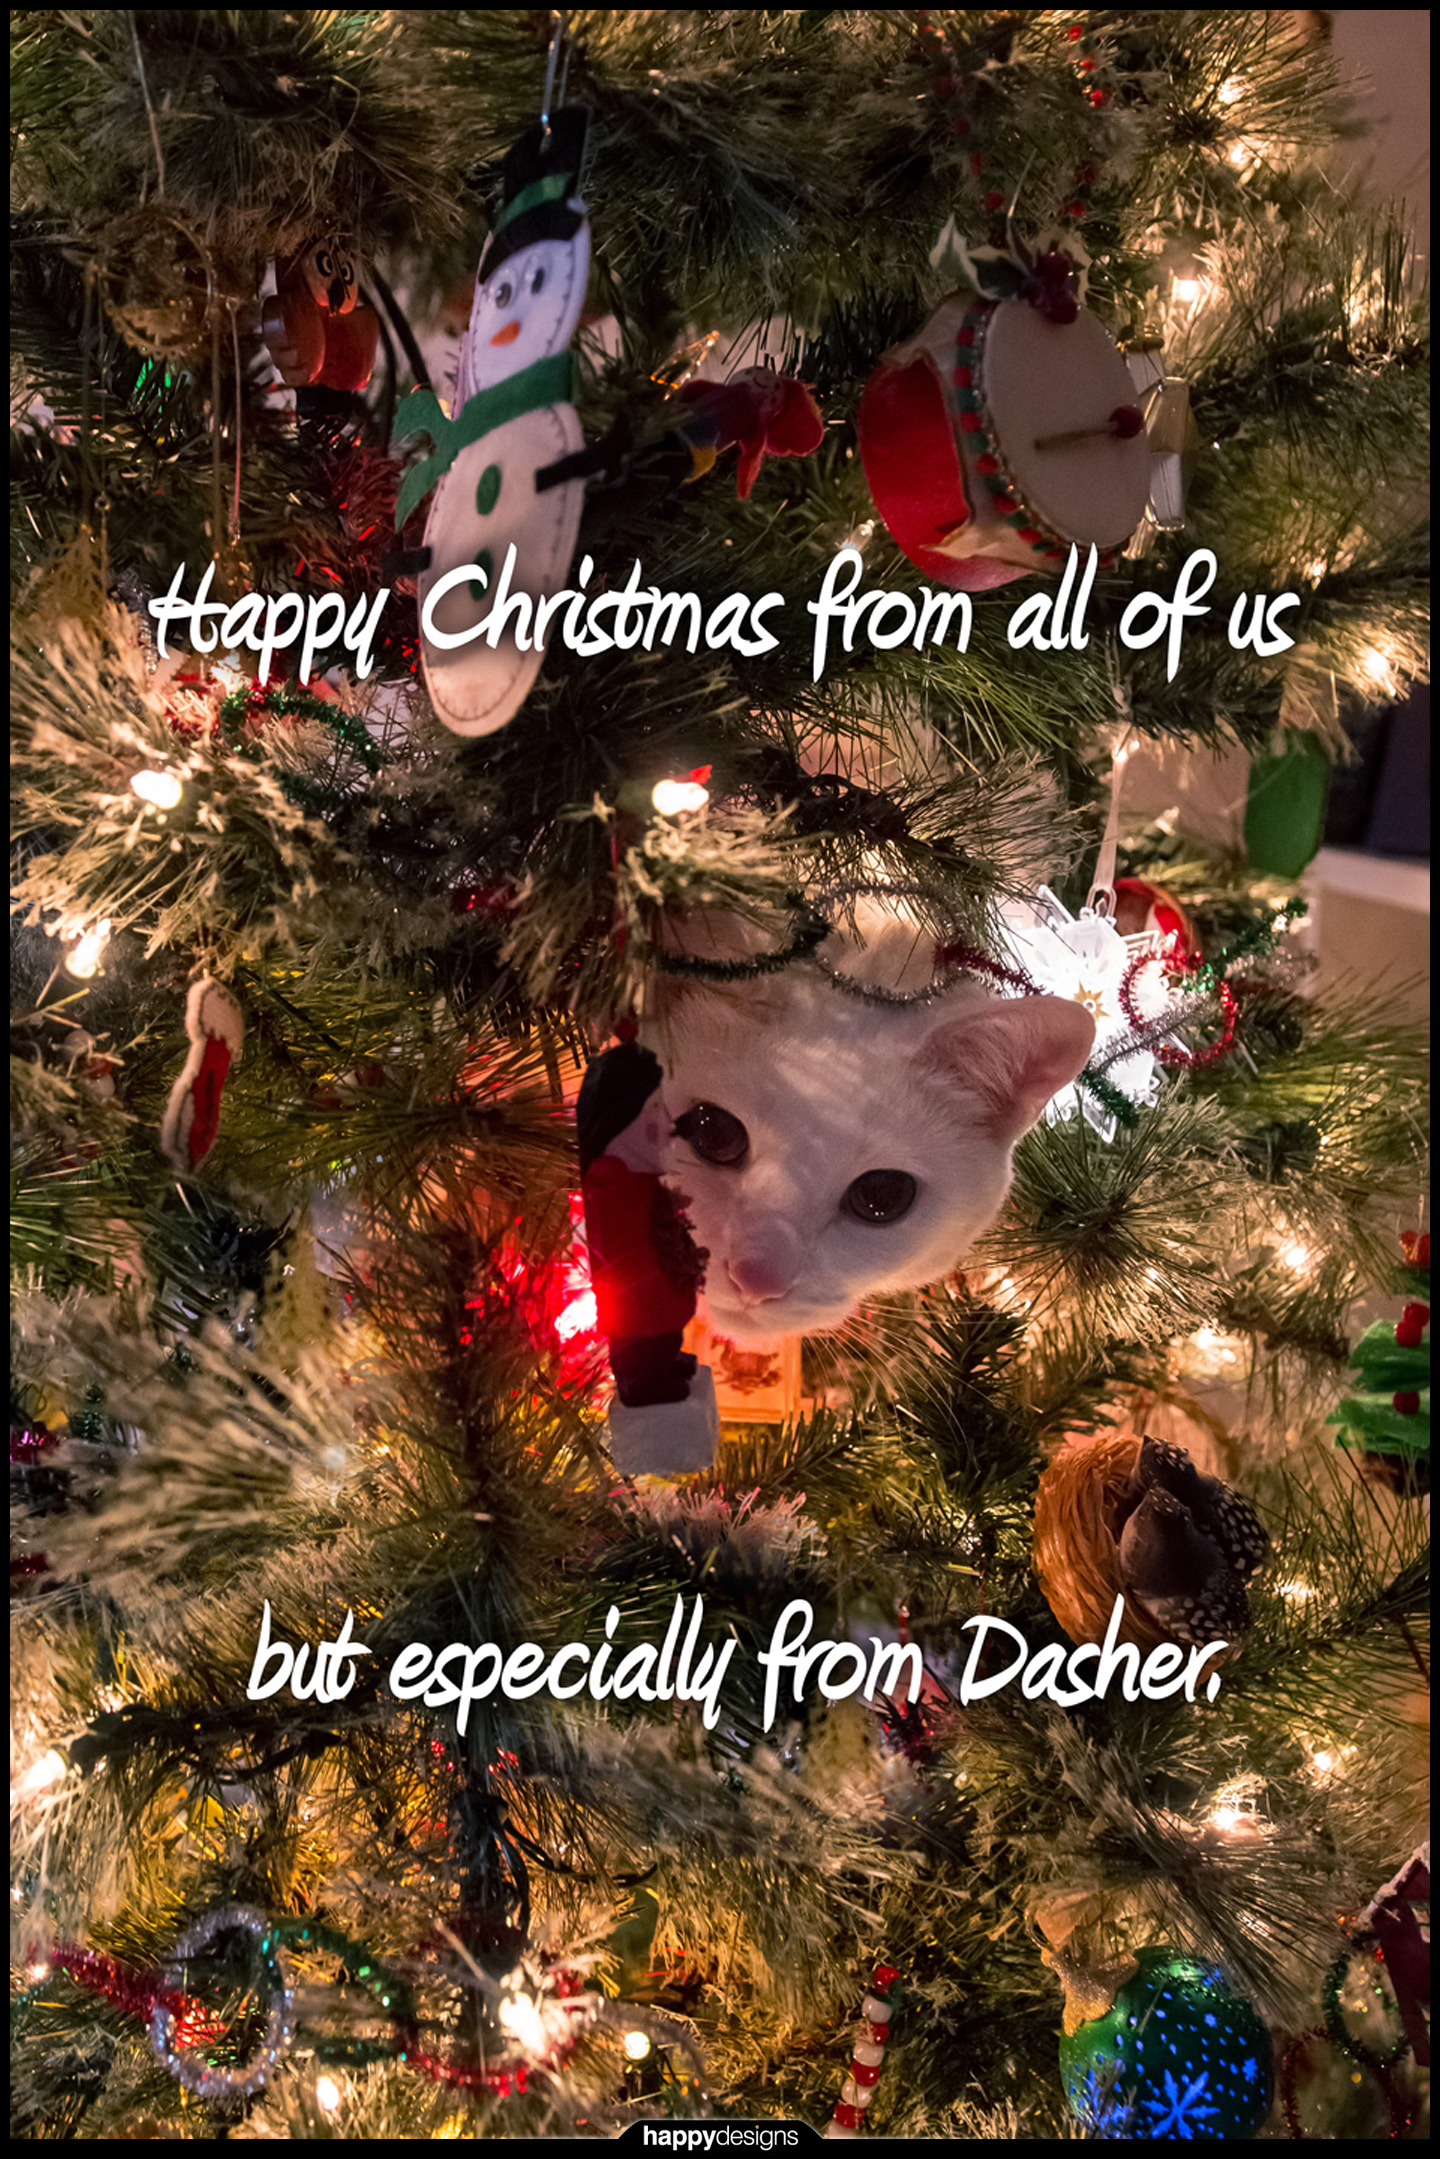 20141222 - Dasher IN the Christmas tree